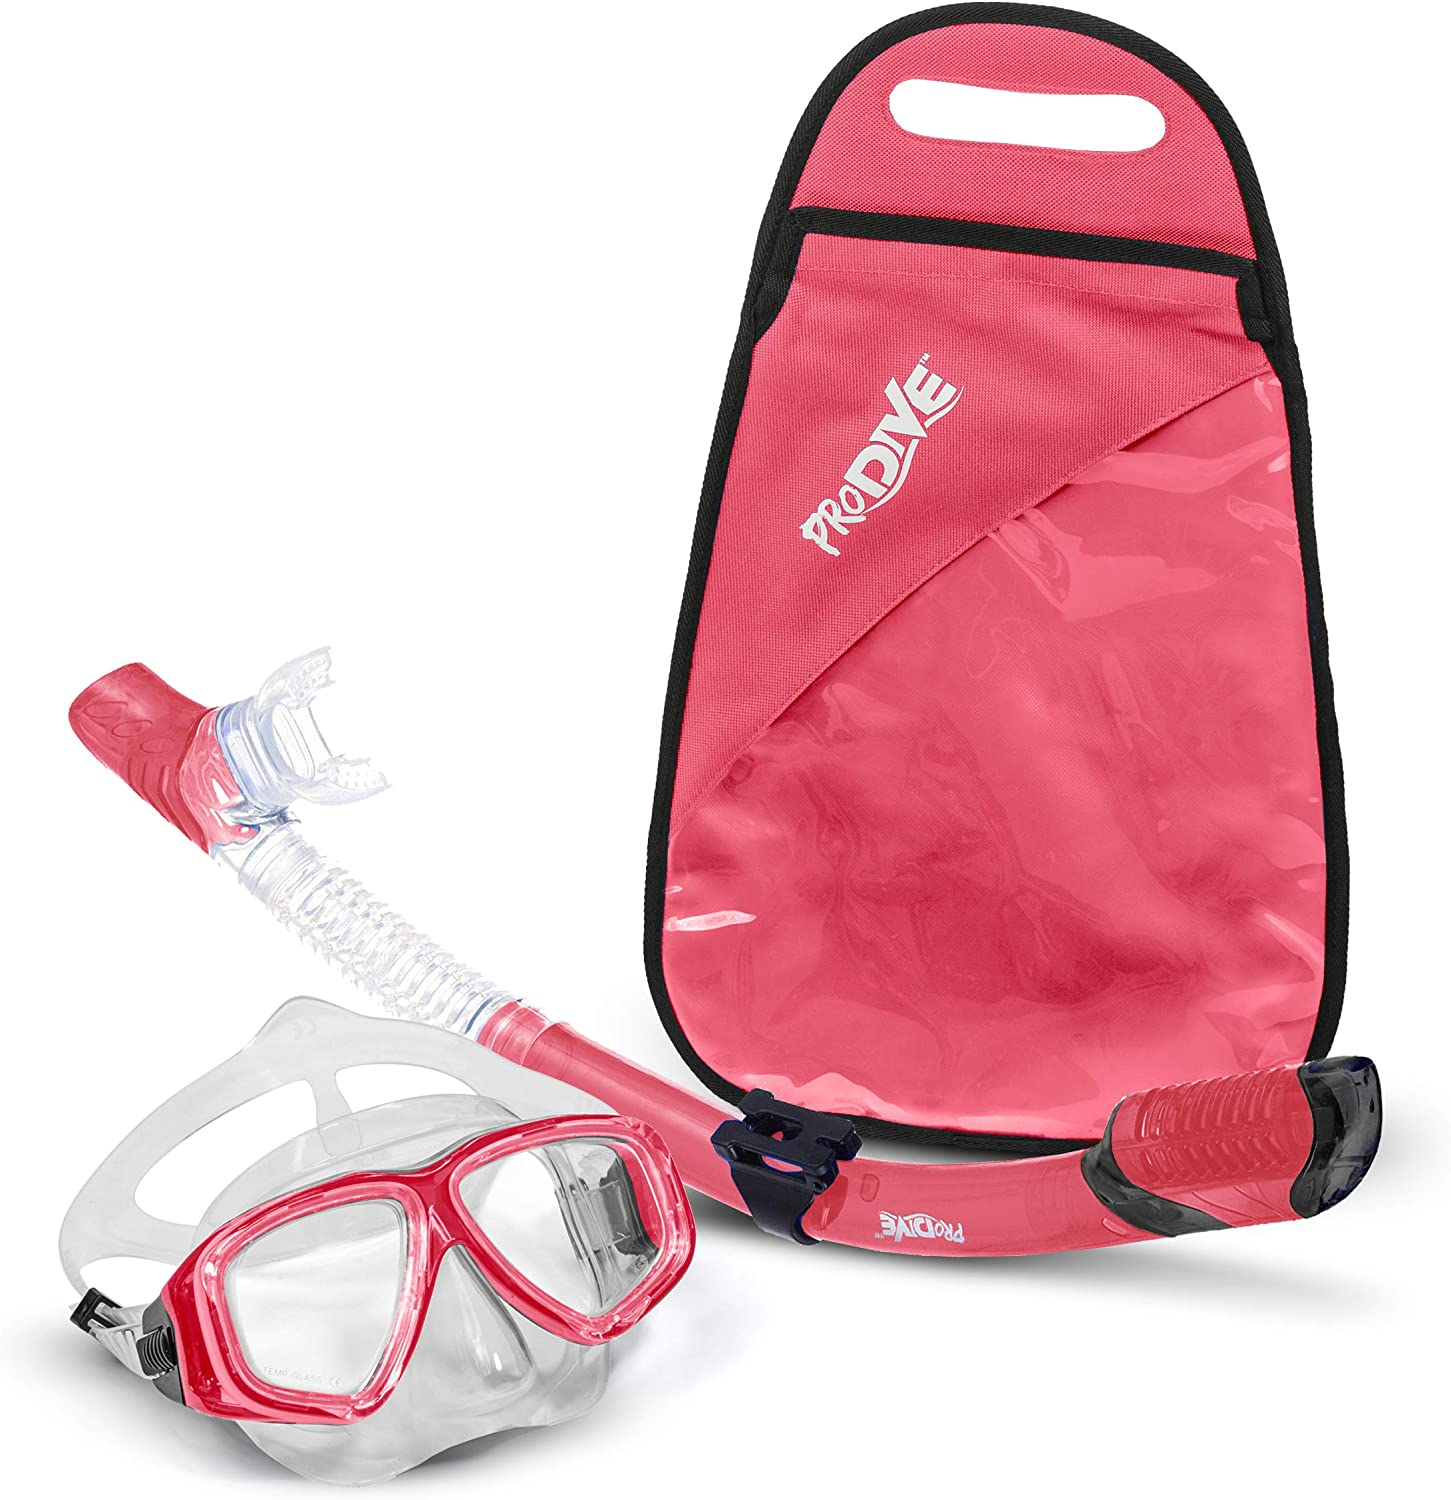 PRODIVE Premium Dry Top Snorkel Set  Impact Resistant Tempered Glass Diving Mask Watertight and AntiFog Lens for Best Vision Easy Adjustable Strap Waterproof Gear Bag Included